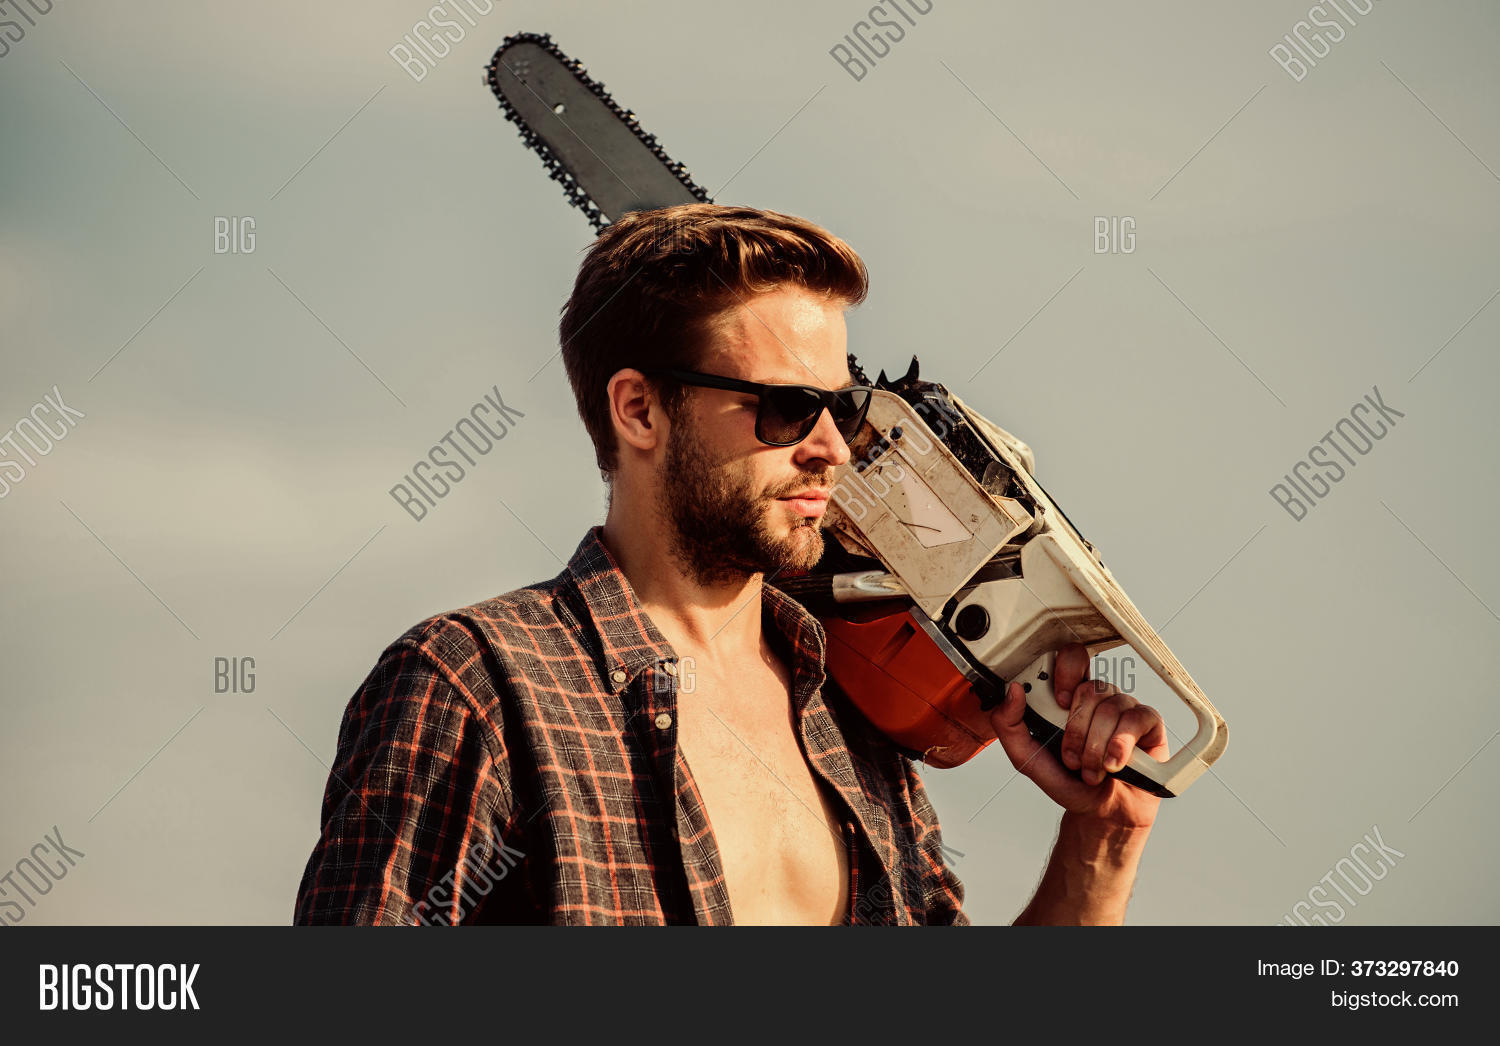 Brutal And Sexy Worker. Men Brutality And Sexuality. Job For Real Men. Sexy Man Sky Background. Comf